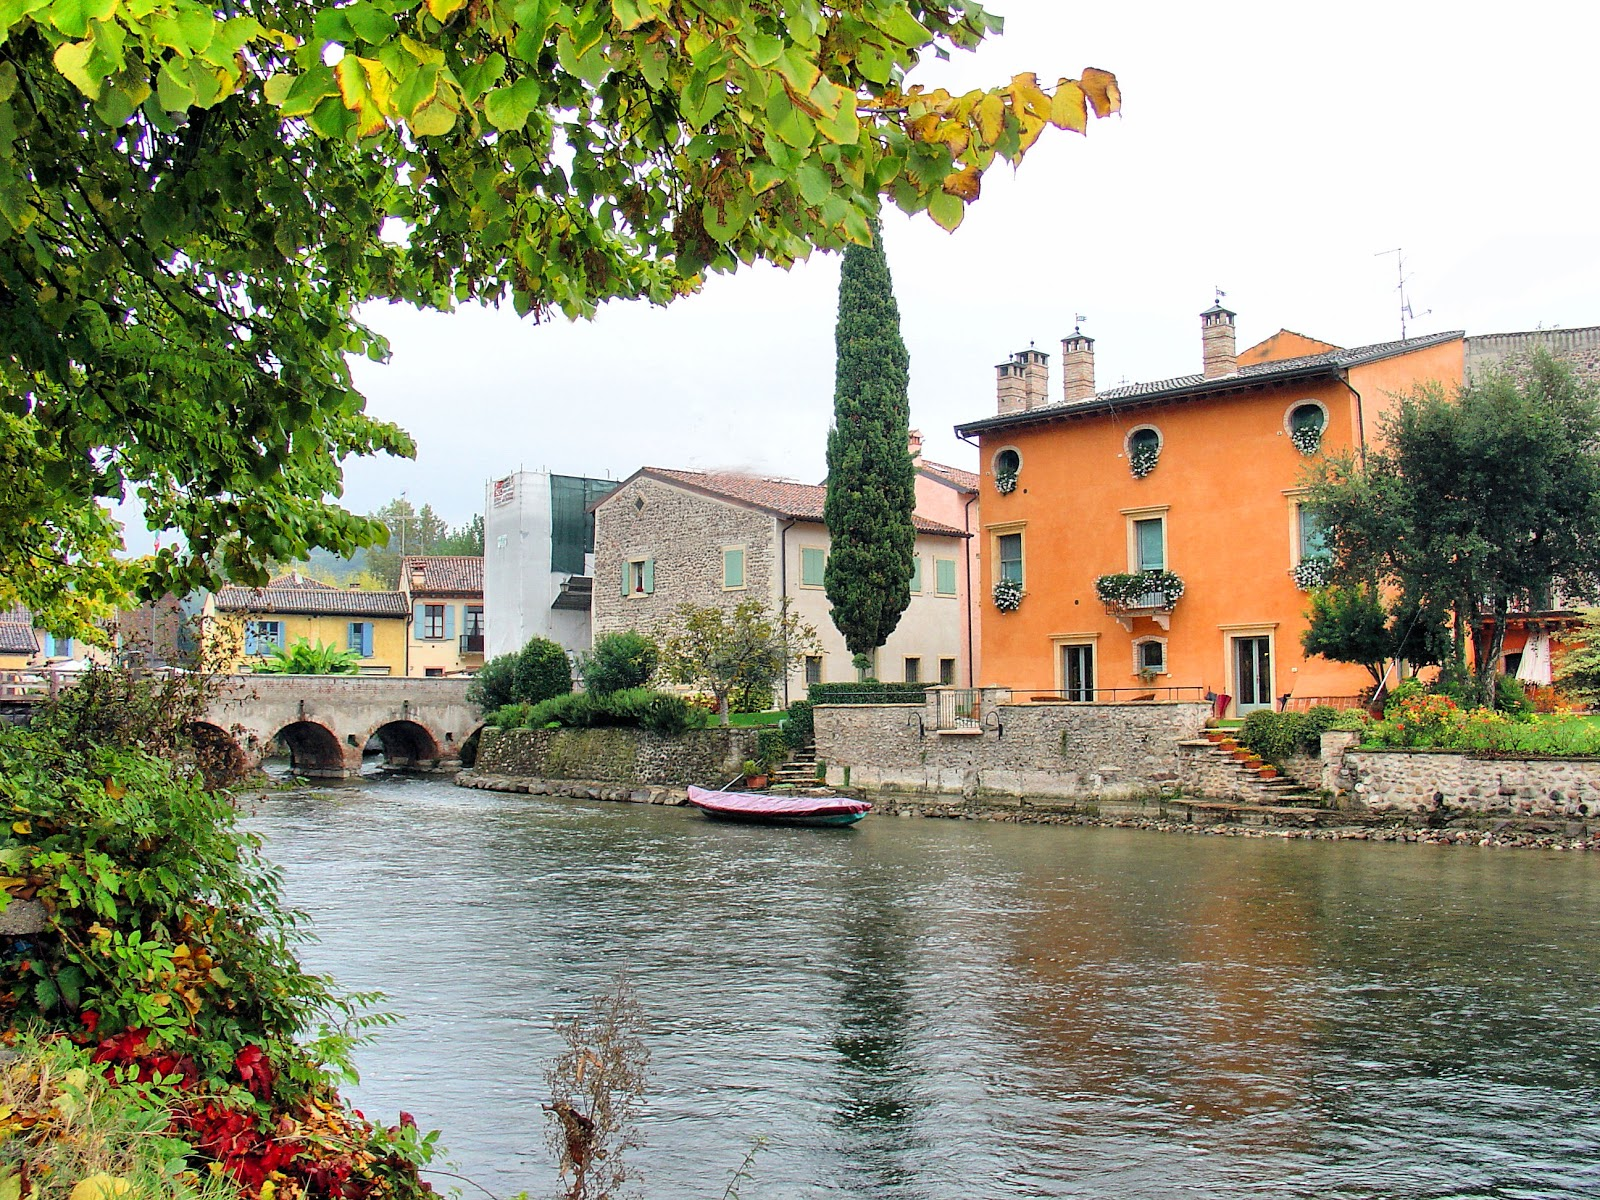 Gazing upon the village of Borghetto along the banks of the Mincio River.